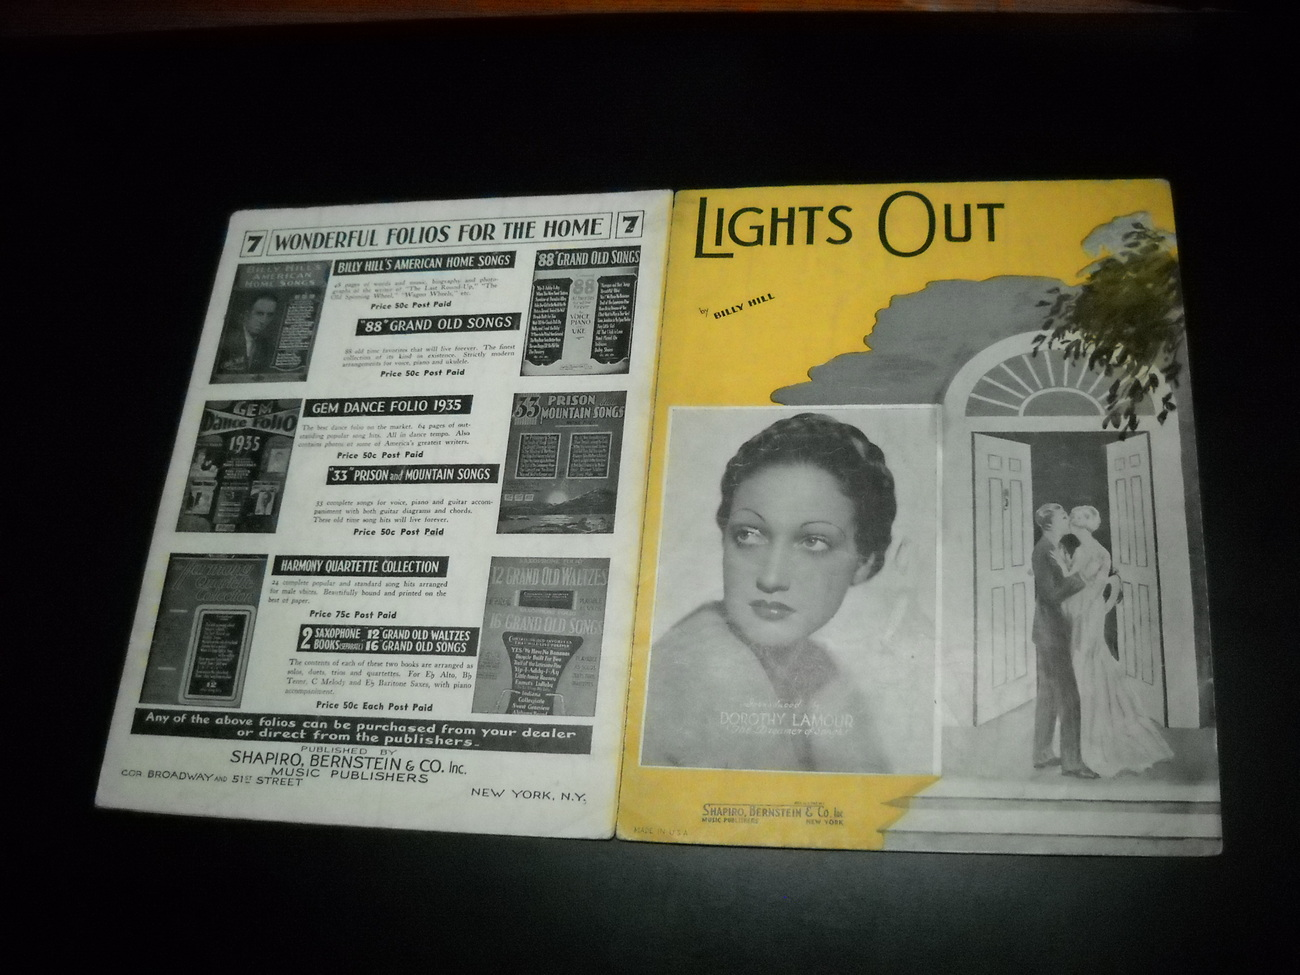 Sheet_music_lights_out_dorothy_lamour_billy_hill_1935_shapiro_bernstein_06